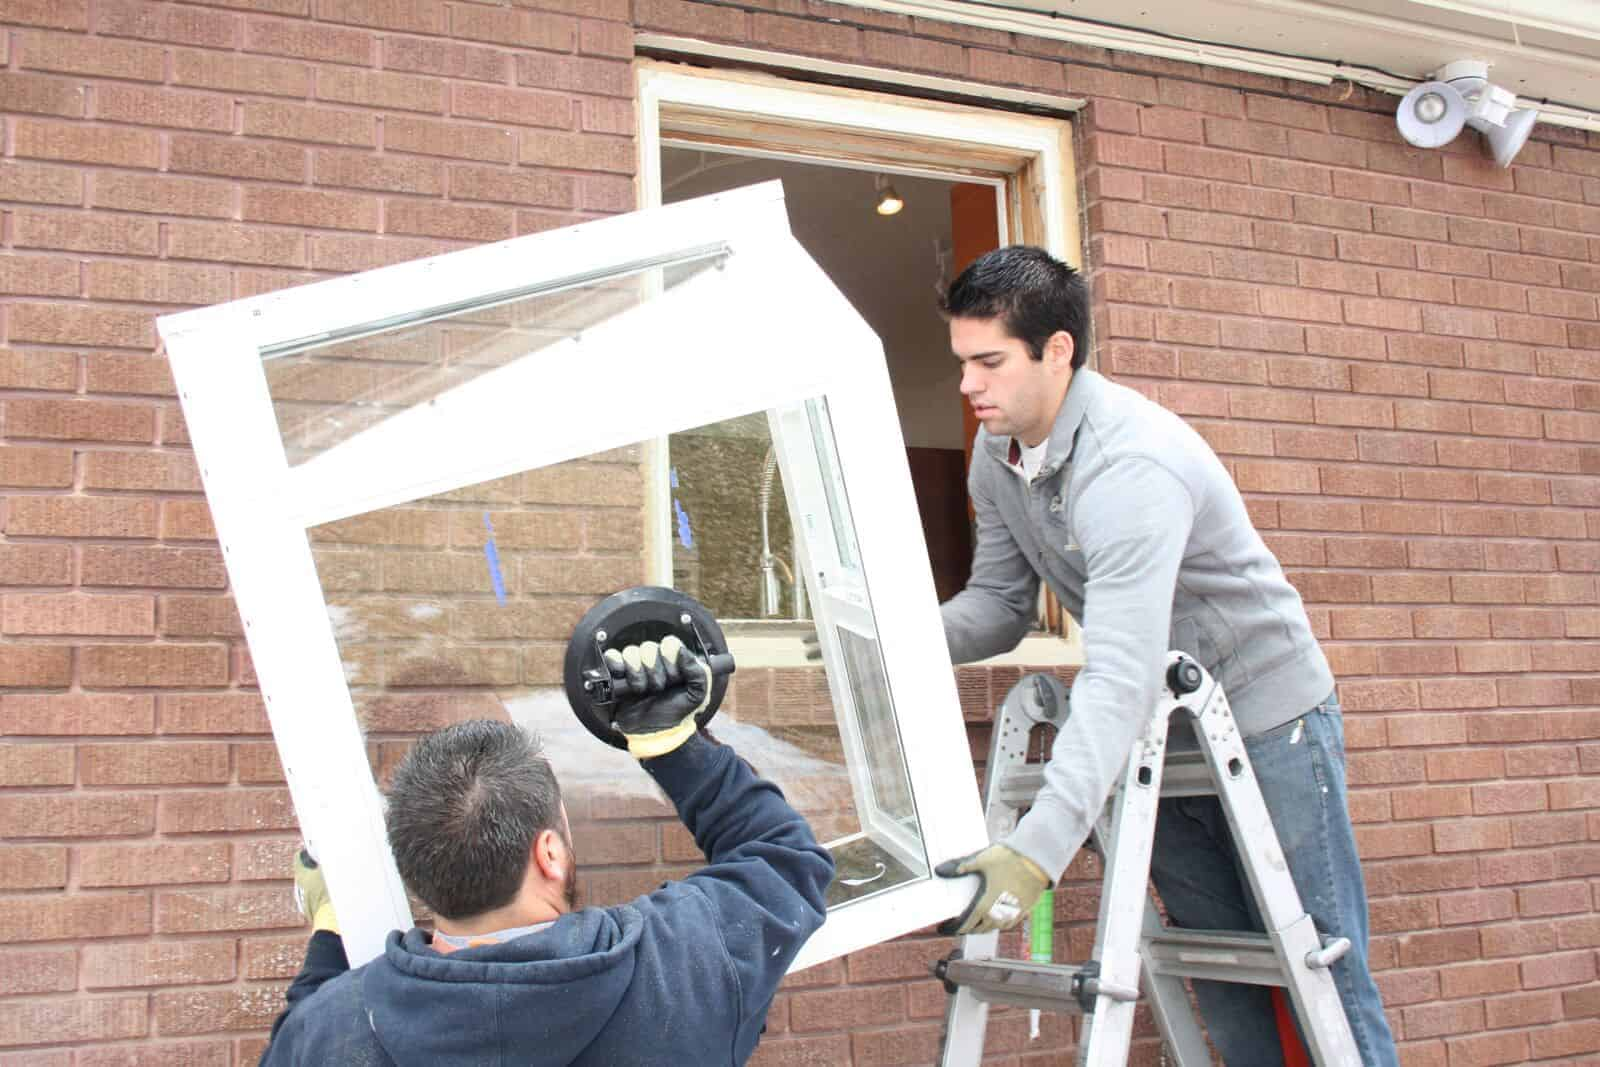 Jones Paint & Glass windows installers replace old house window in Utah residential home